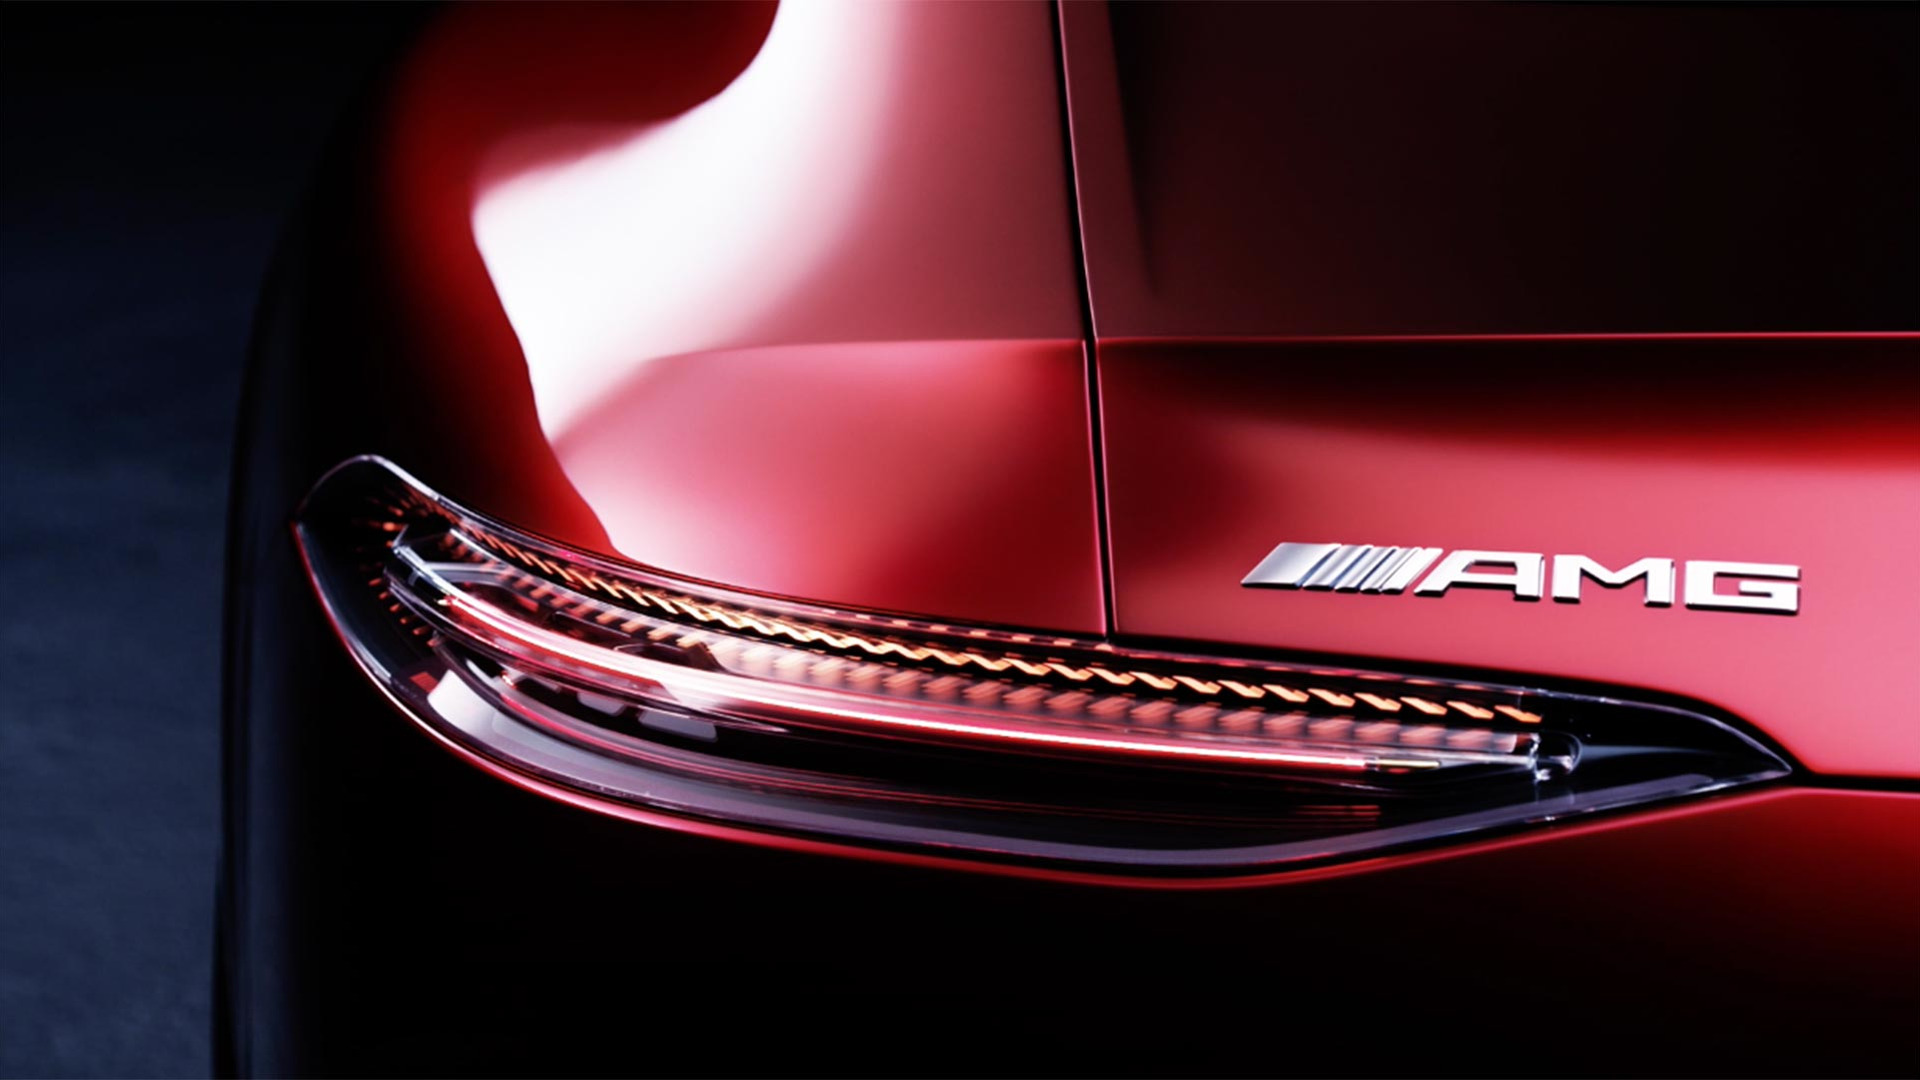 Mercedes-AMG GT Concept shows off its curves in teaser video product 2017-03-05 18:00:02